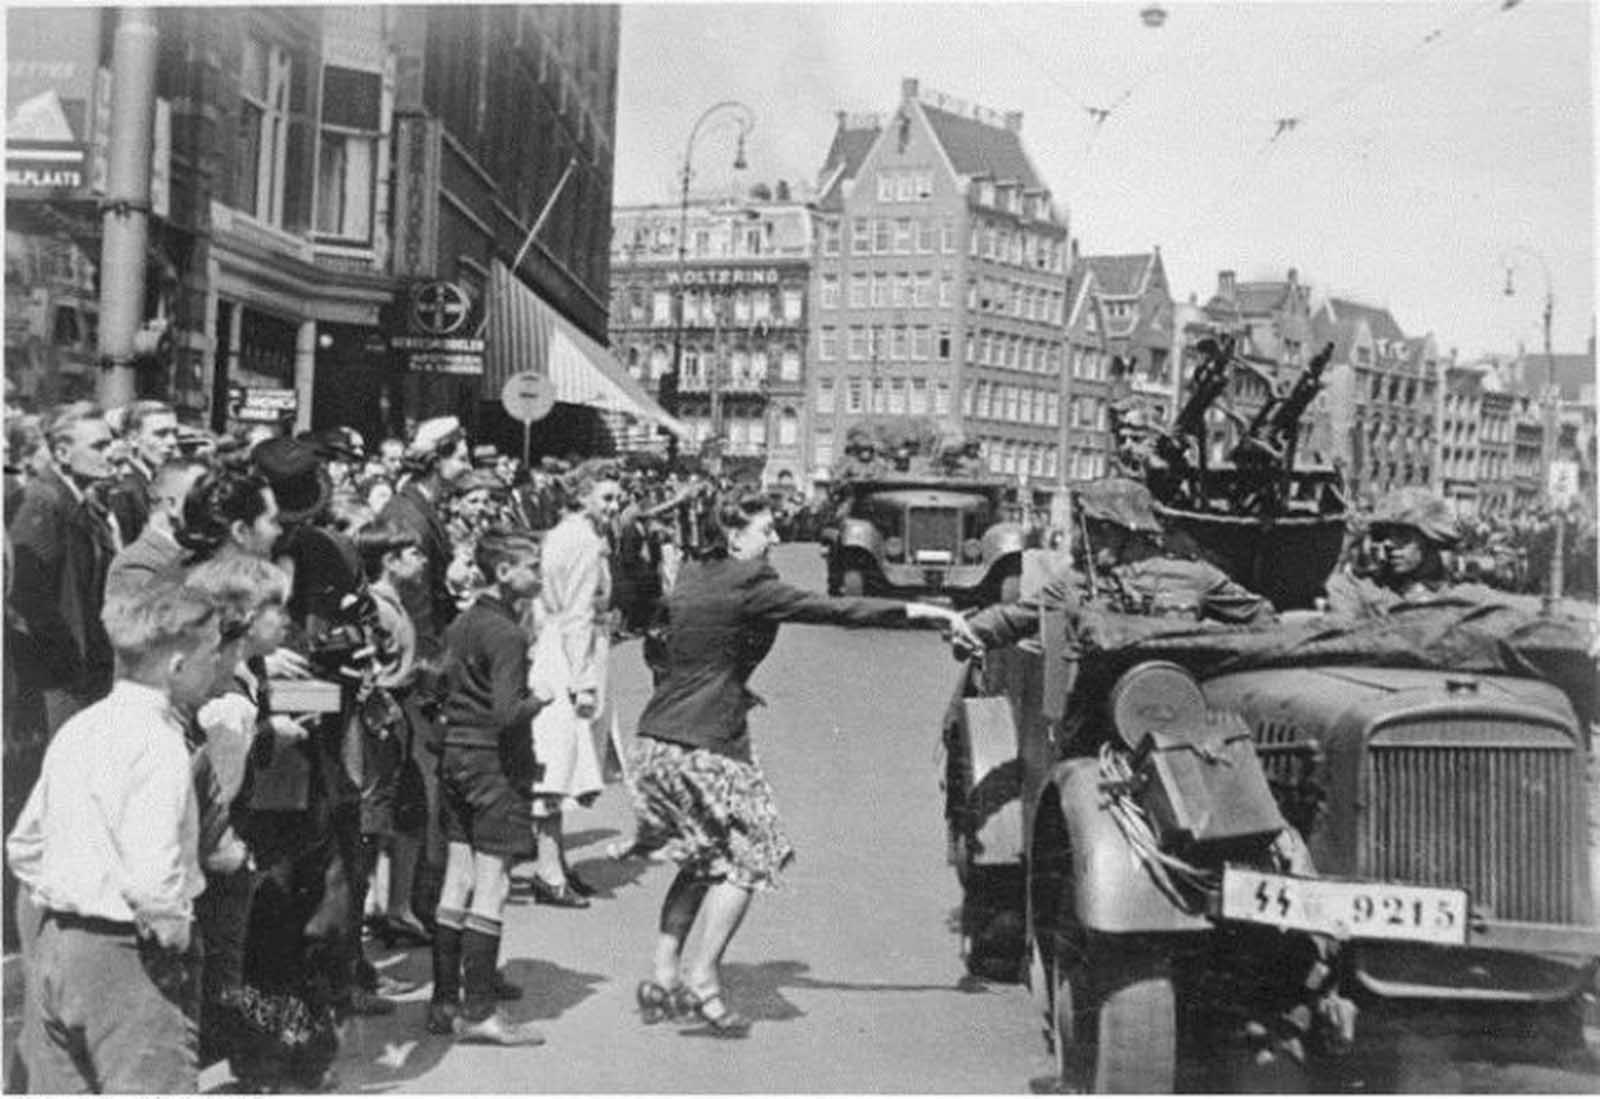 A Dutch girl greets the Wehrmacht boys as they enter Amsterdam, 15 May 1940.